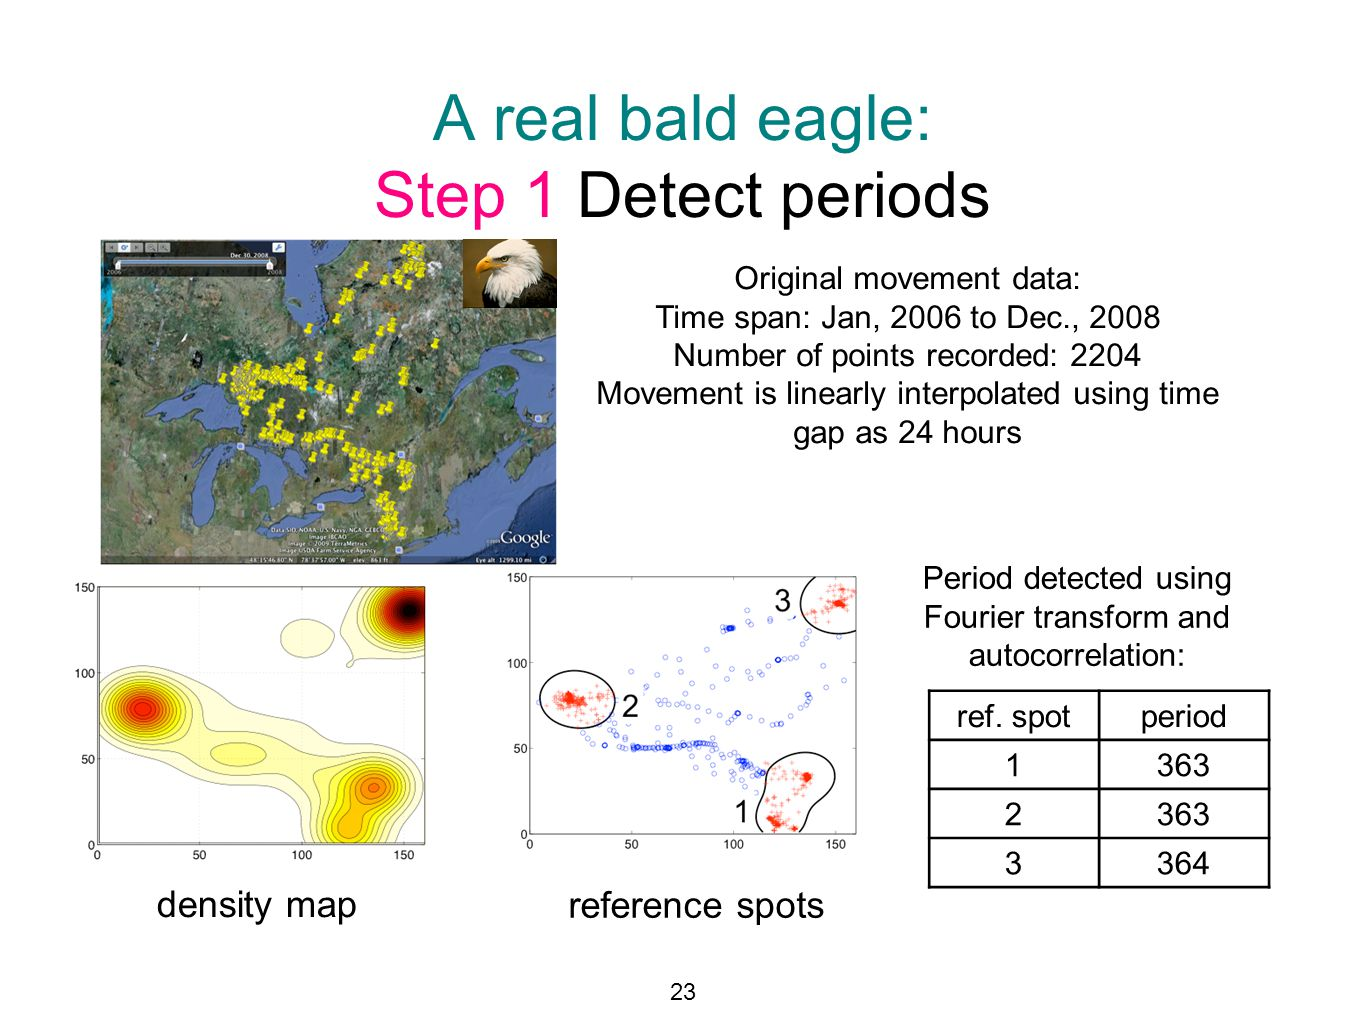 A real bald eagle: Step 1 Detect periods